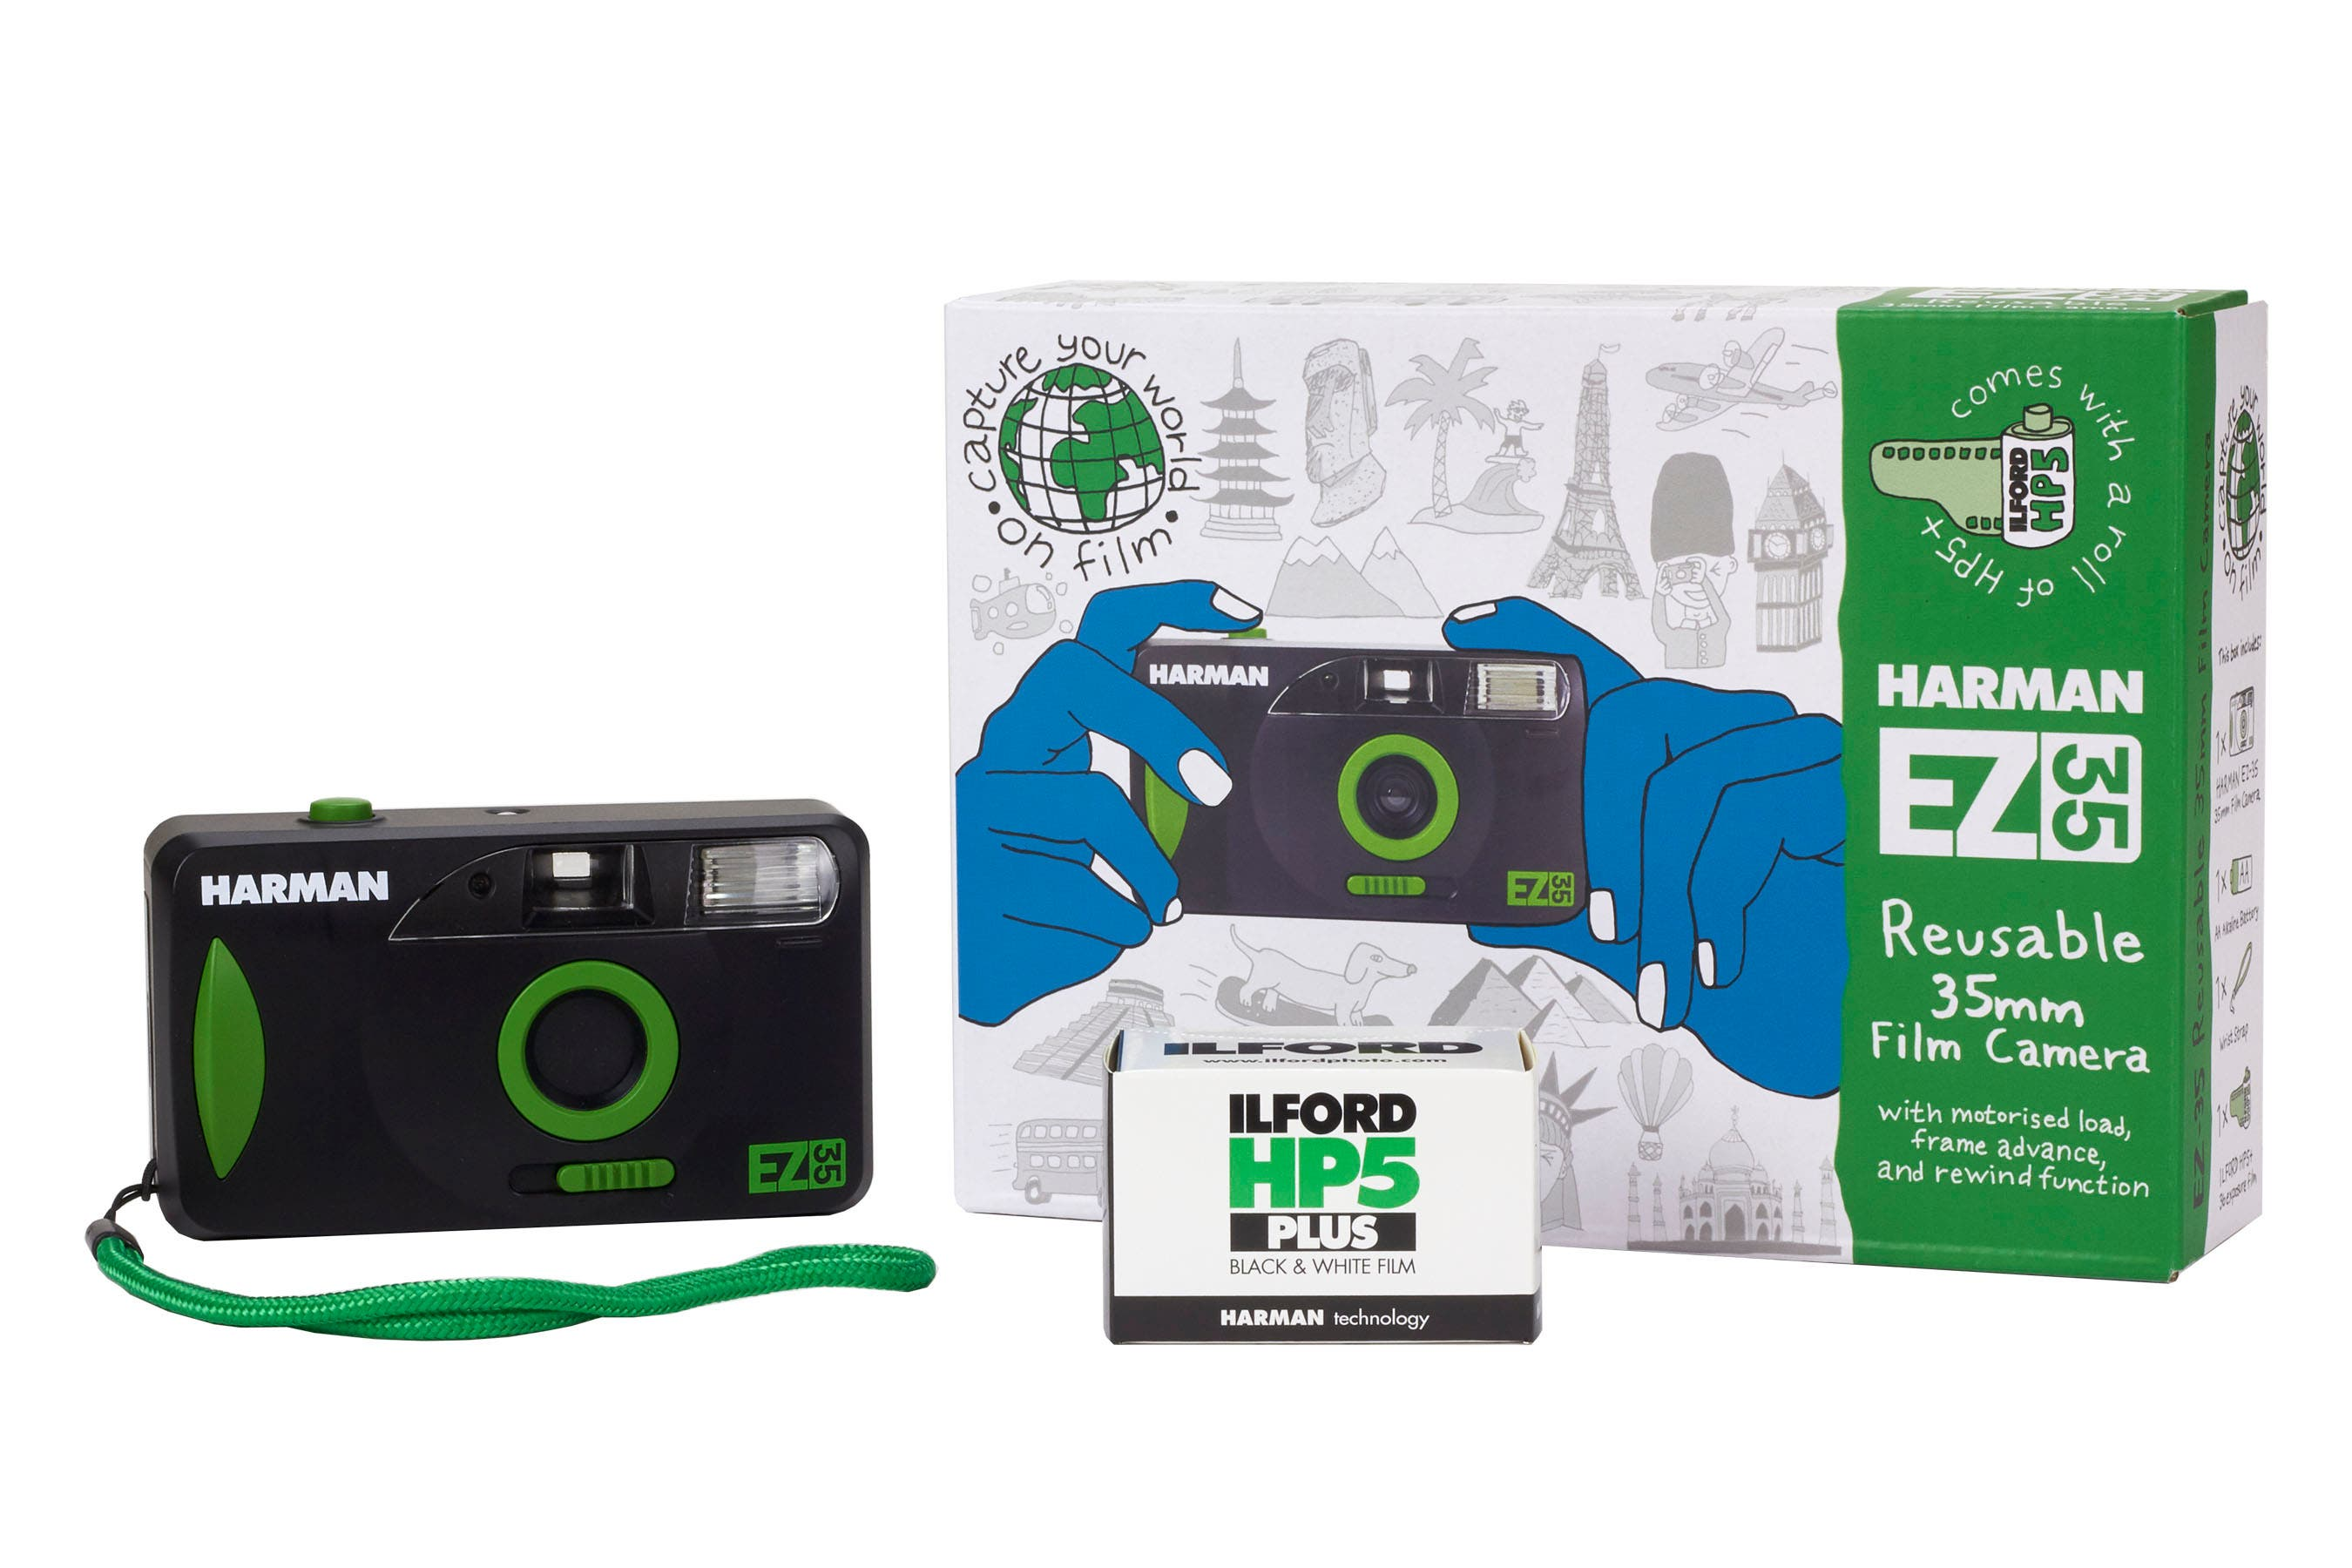 thephoblographer.com - The Harman EZ35 Offers a Quick and Easy Way Into Film photography